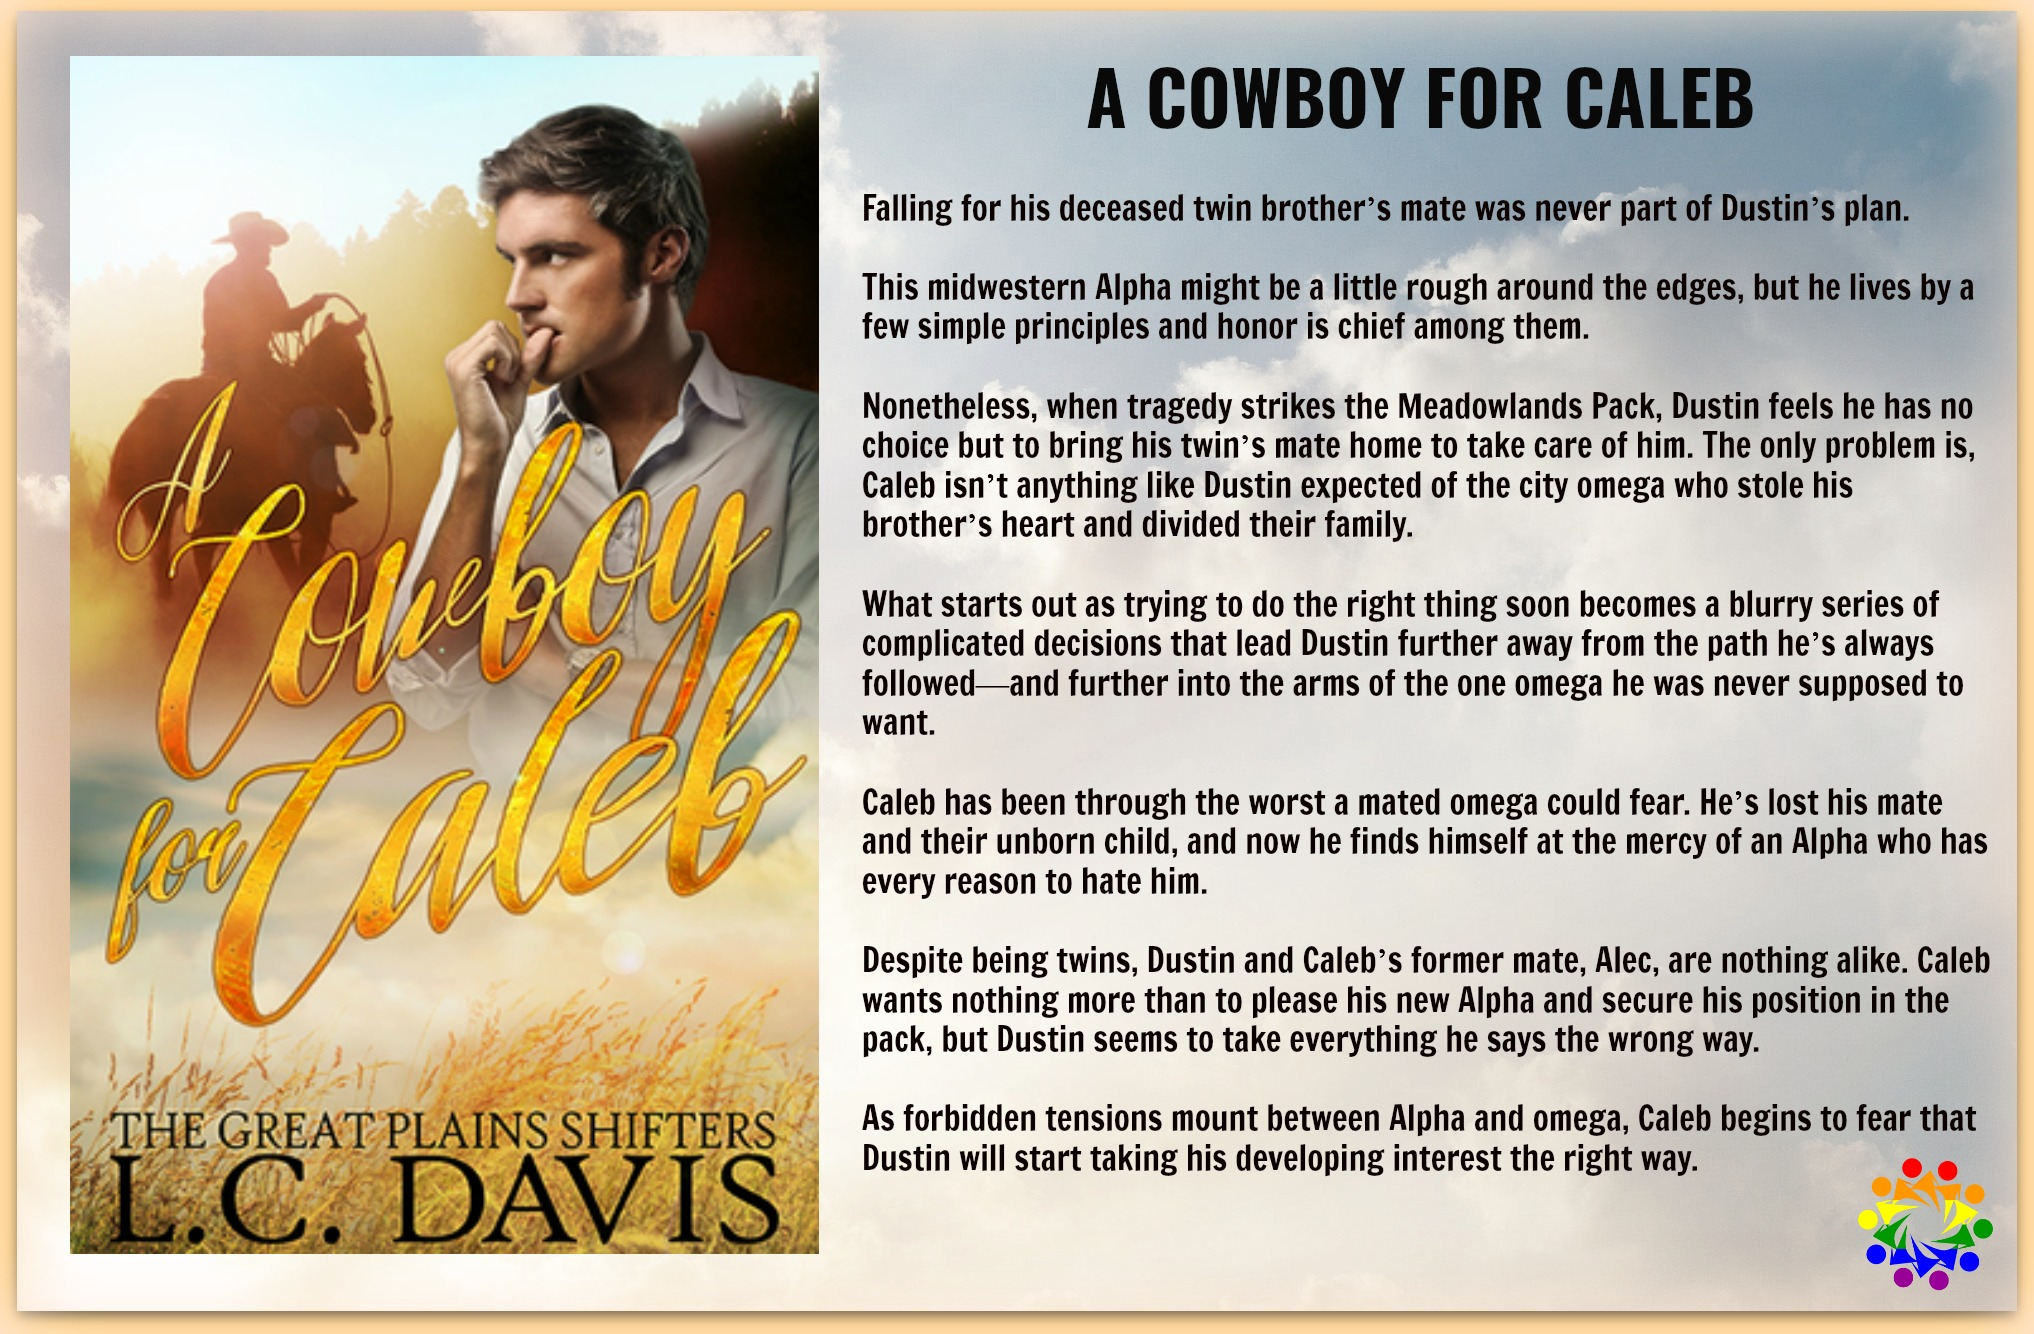 A COWBOY FOR CALEB BLURB